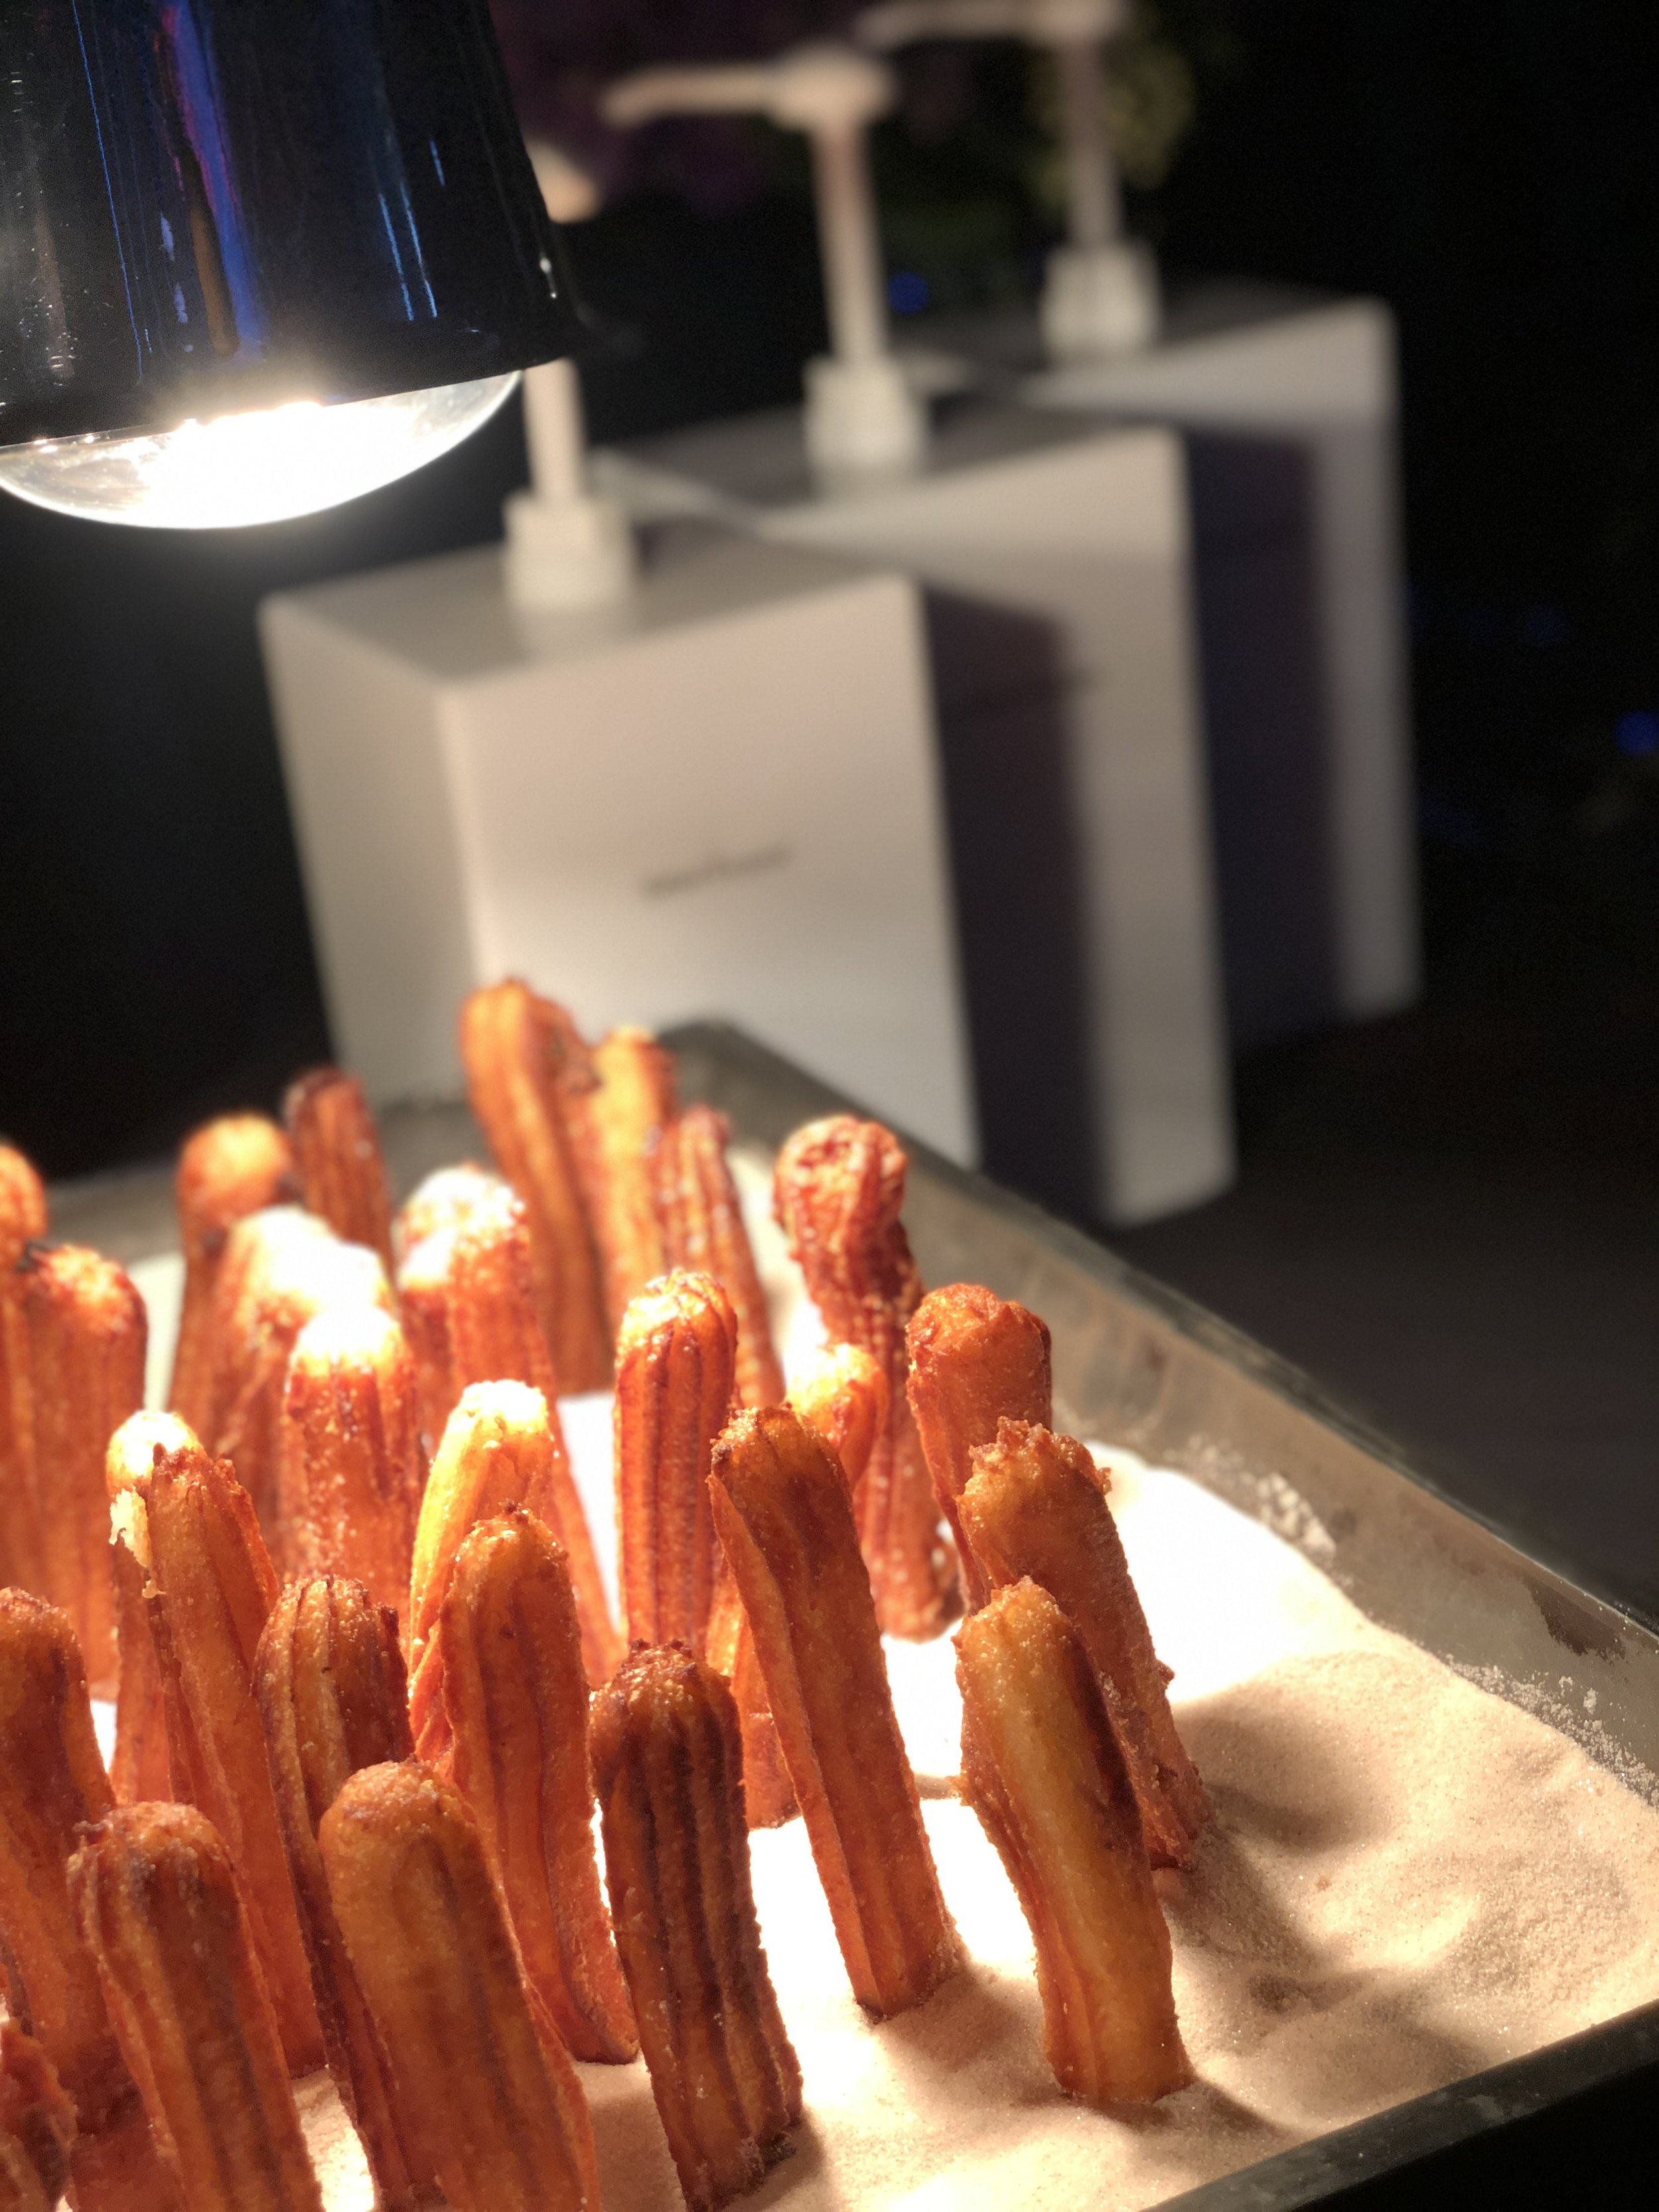 Churros and Schaffer, the best event hospitality and Catering in Los Angeles.